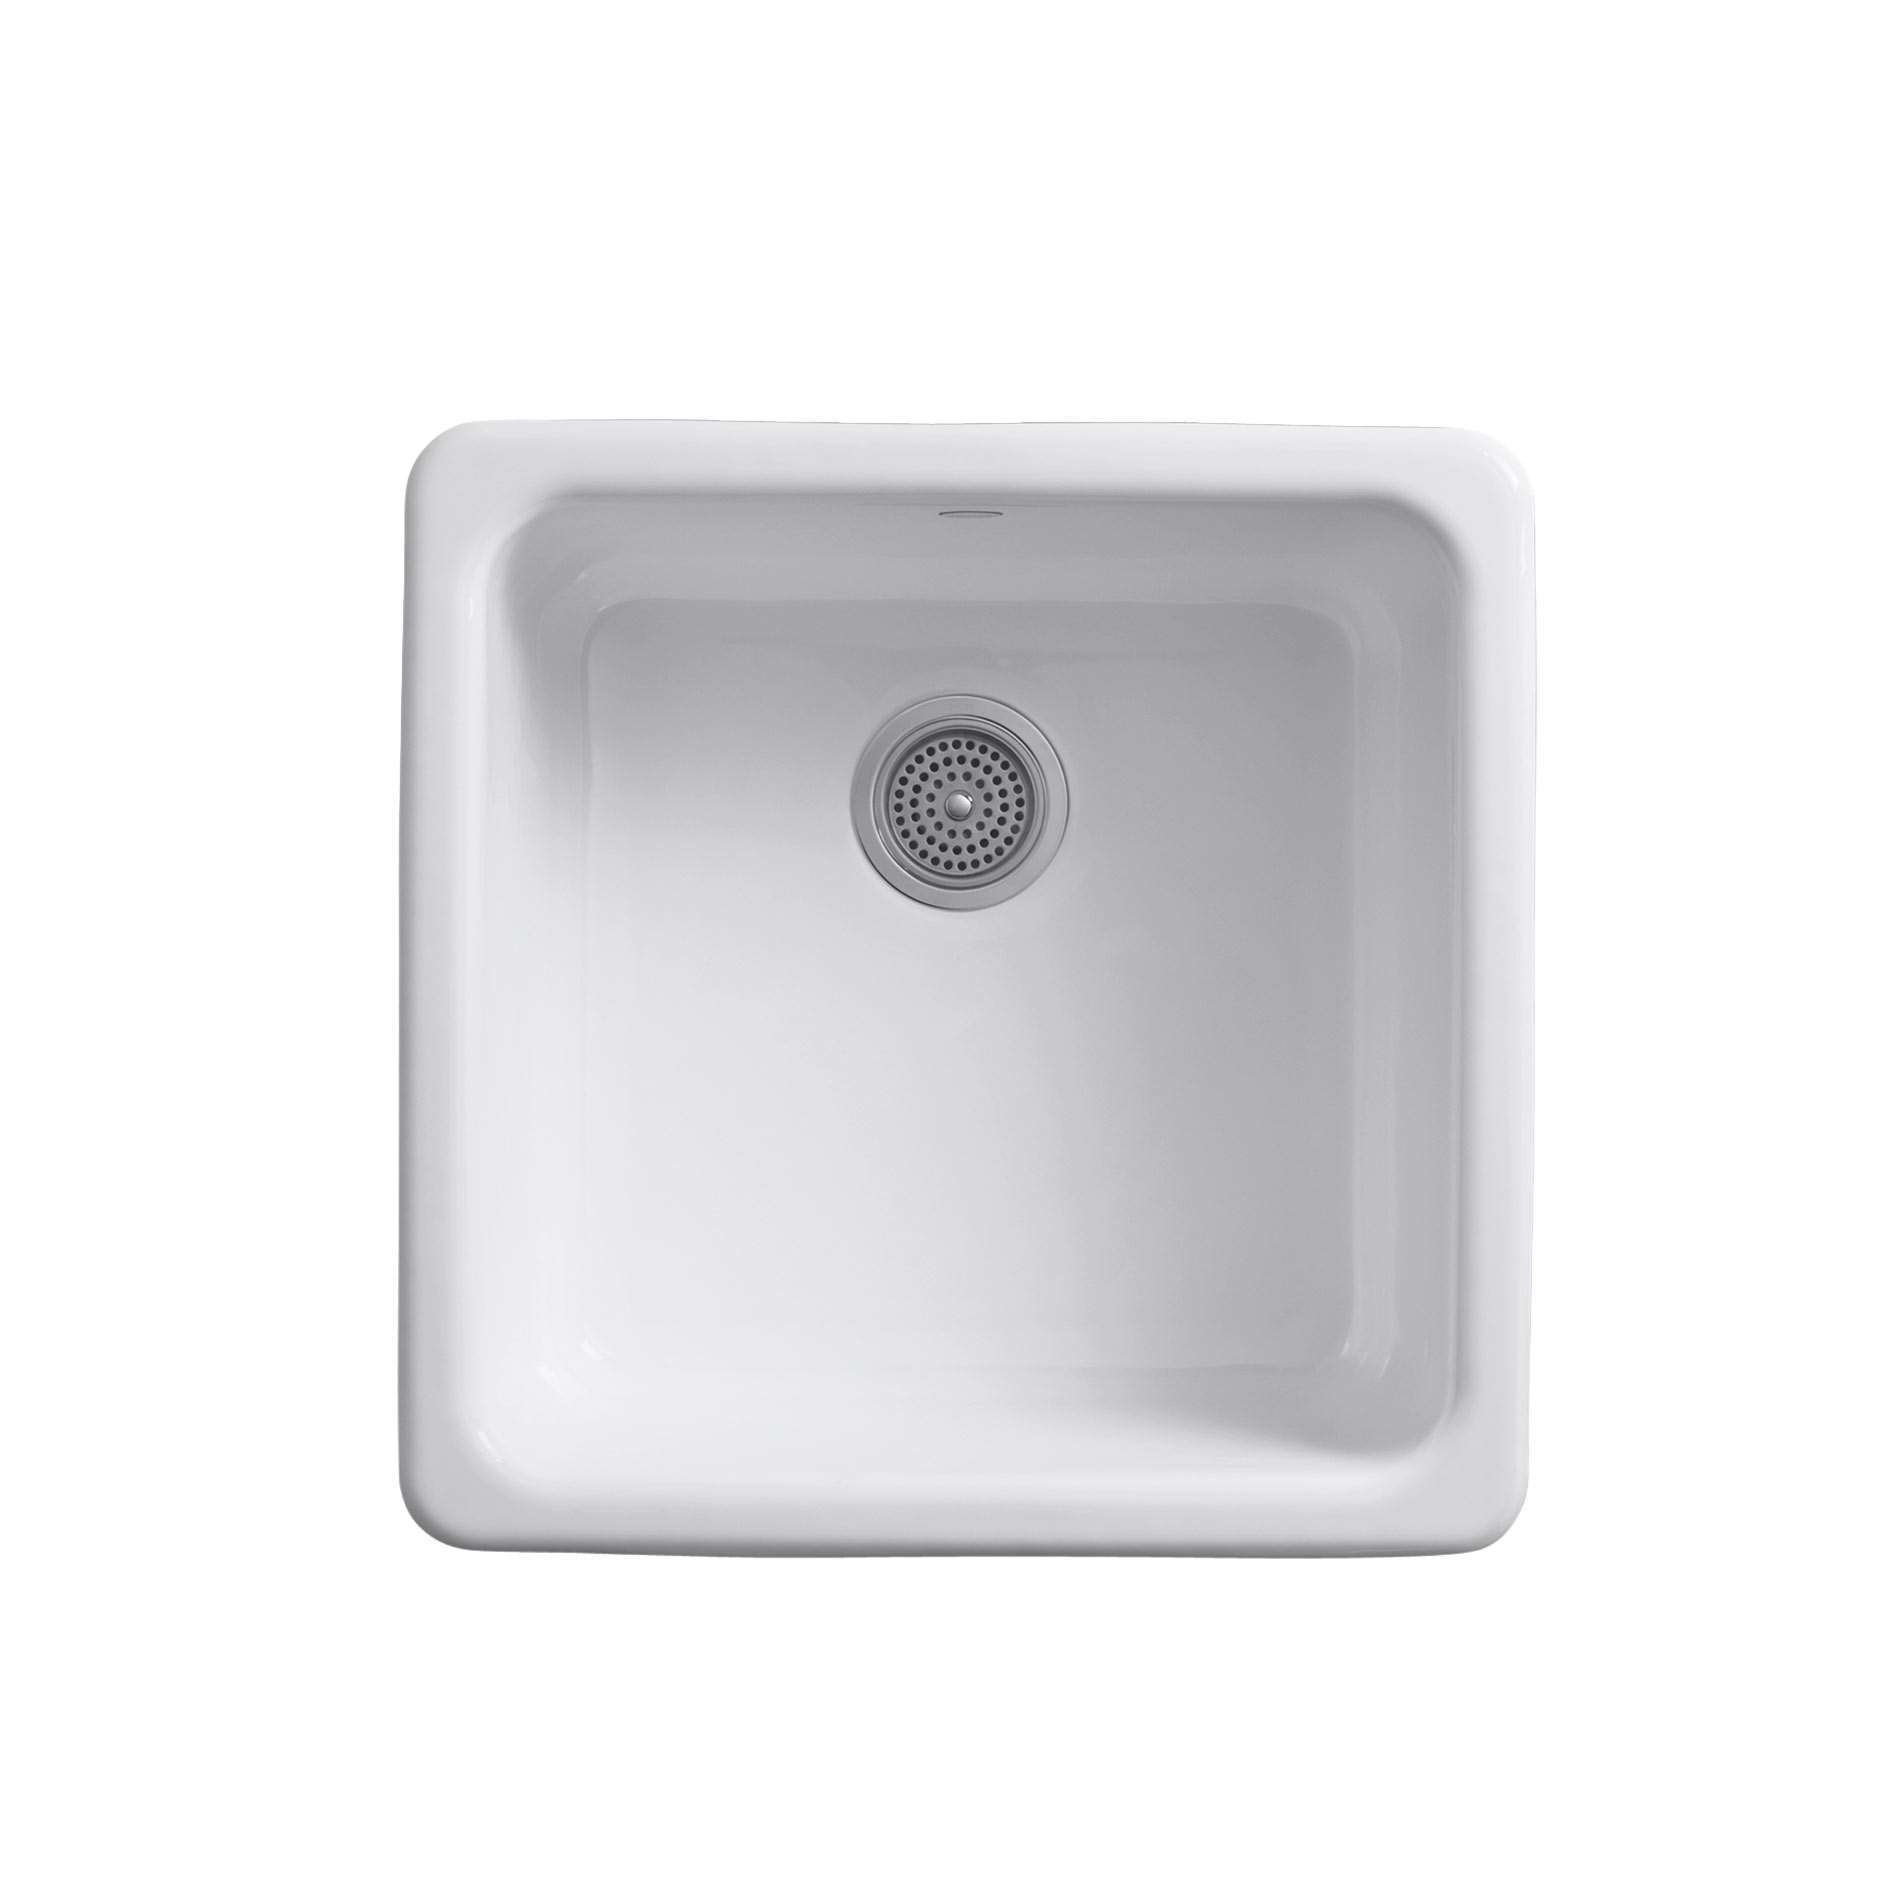 Kohler iron tones 6587 cast iron sink kitchen sinks taps for Cast iron sink manufacturers